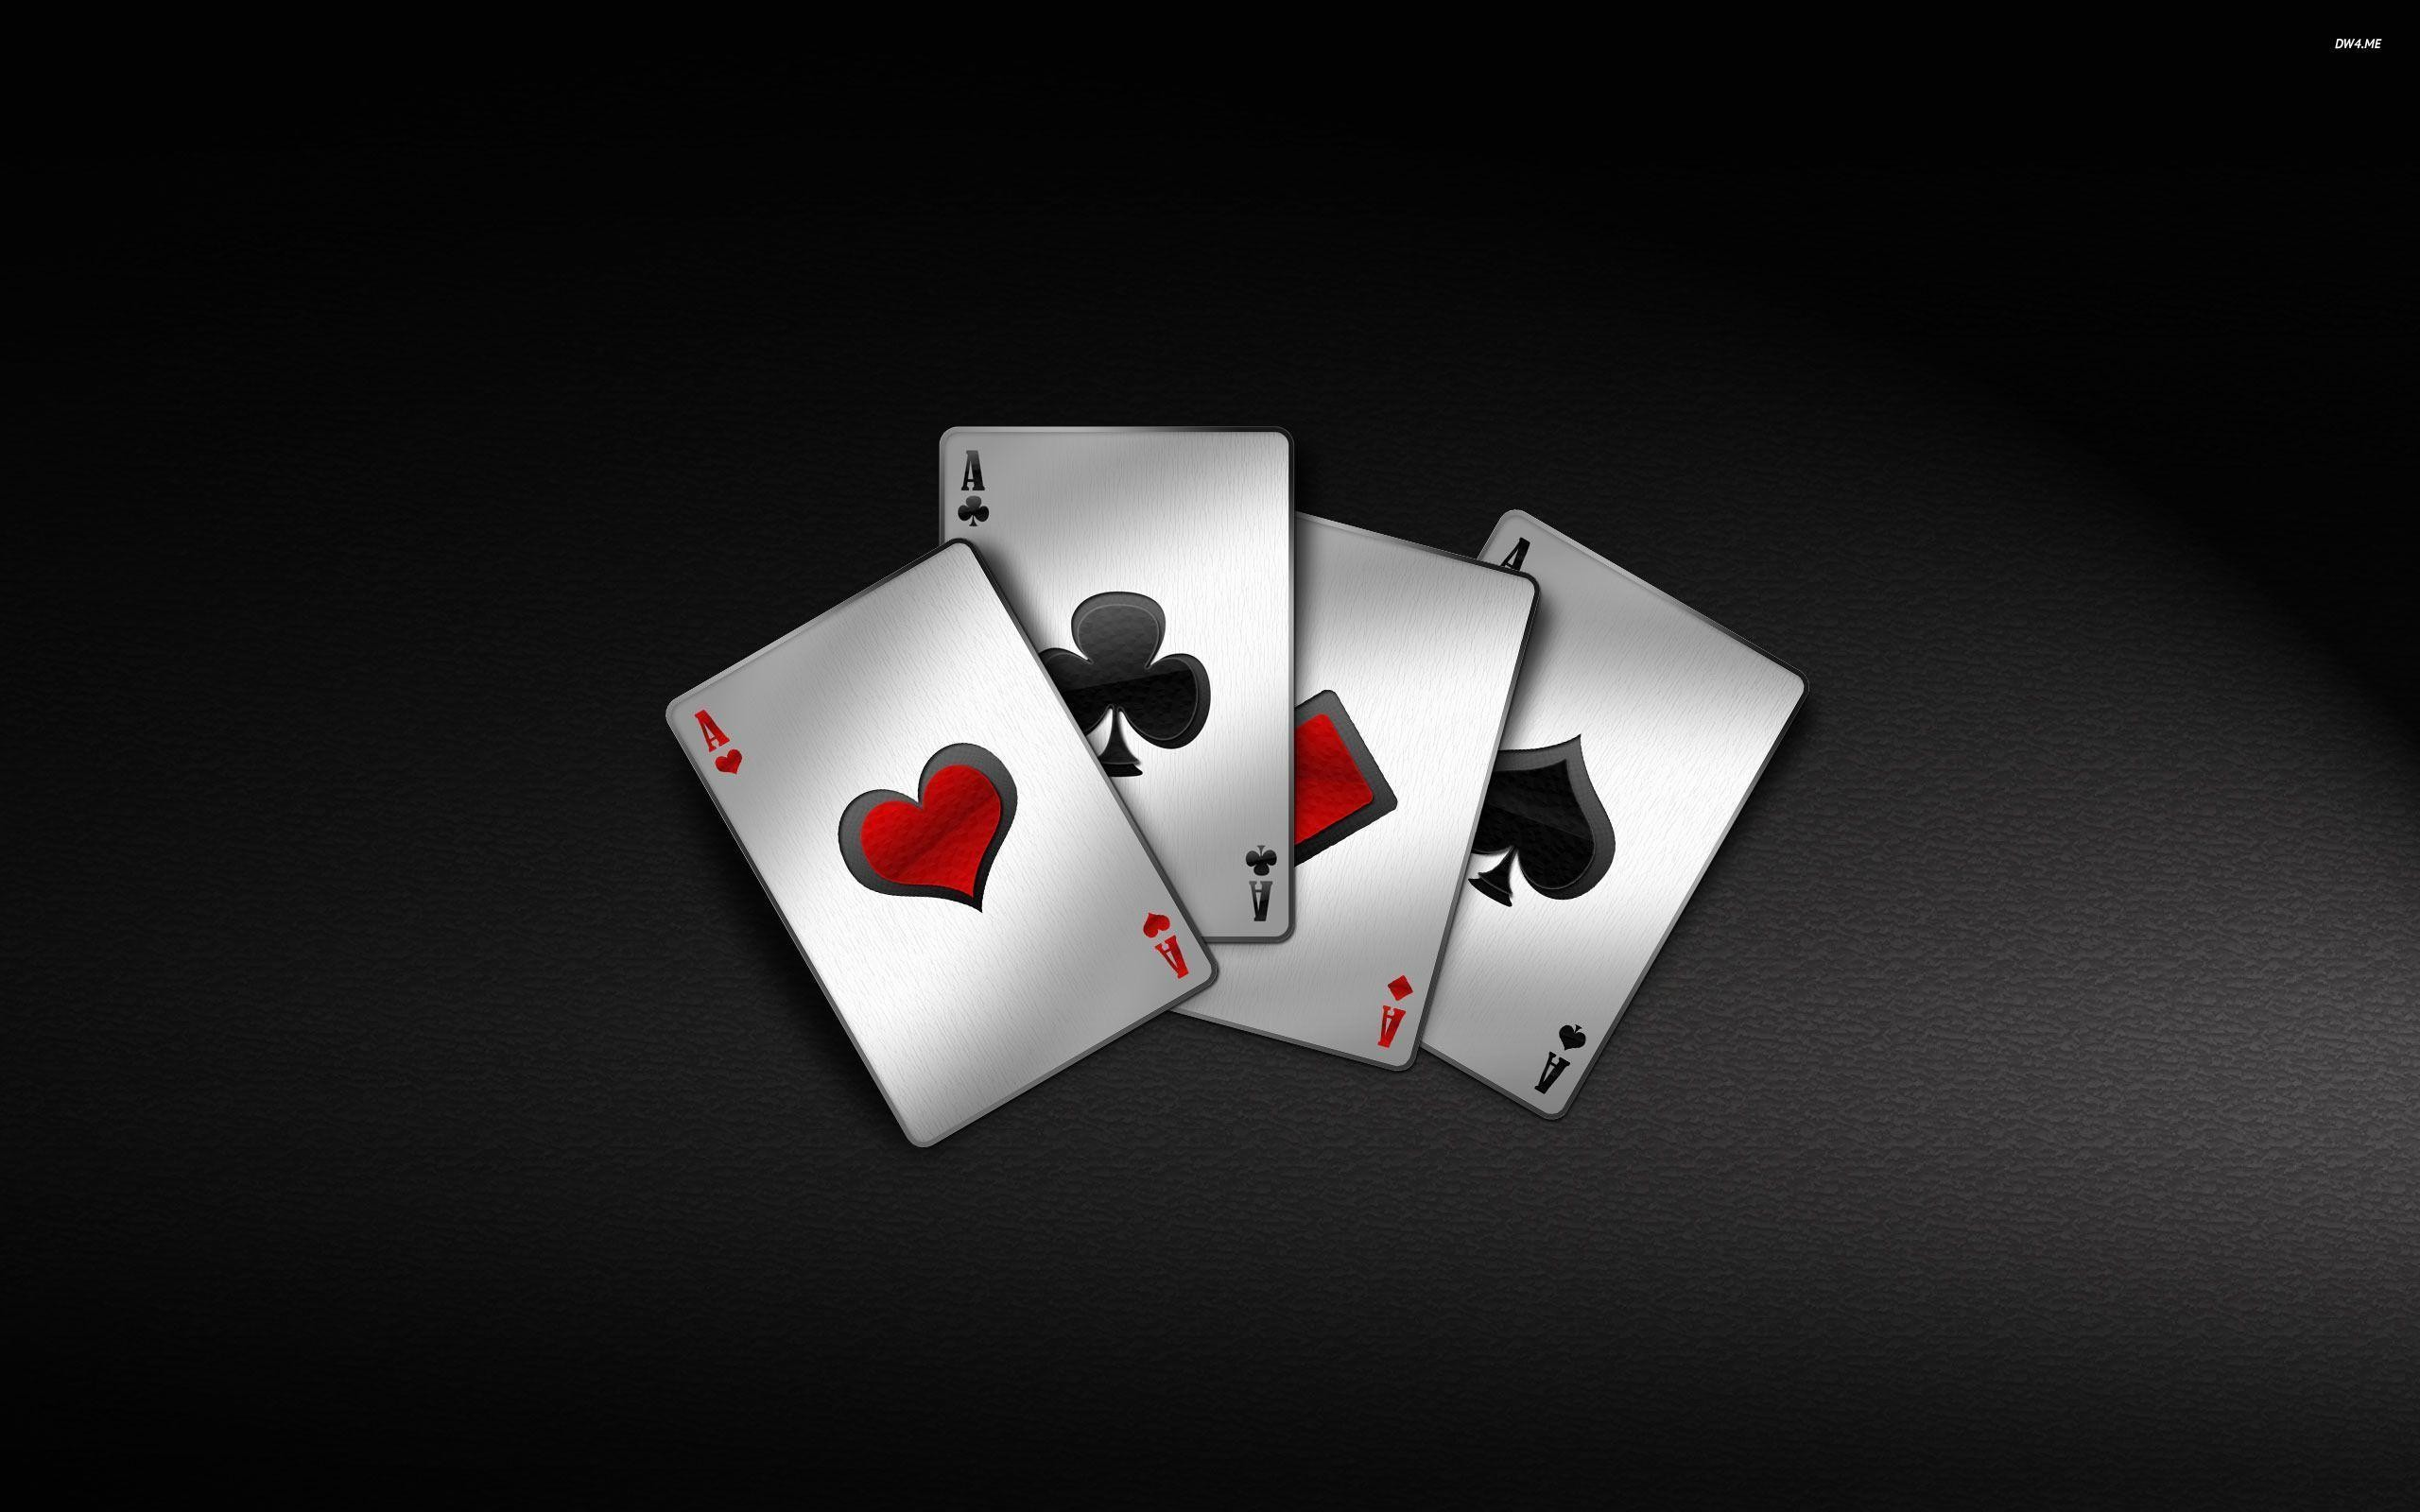 Three Questions And Solutions To Gambling